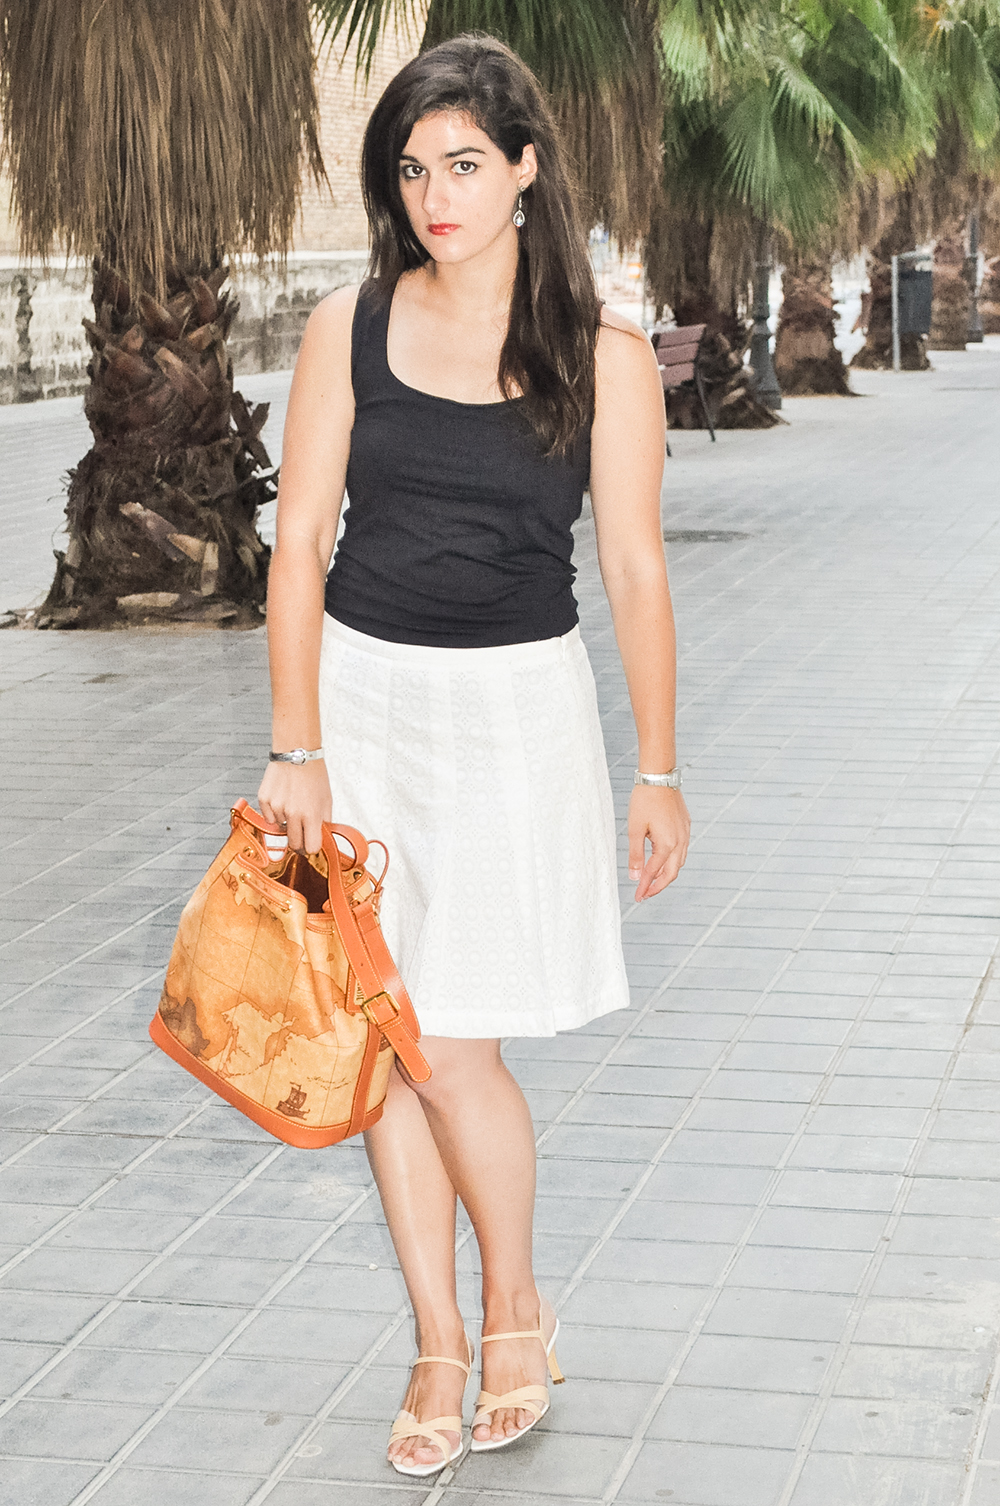 somethingfashionblogger_valencia_spain_firenze_alvieromartini bag map_ootd 3